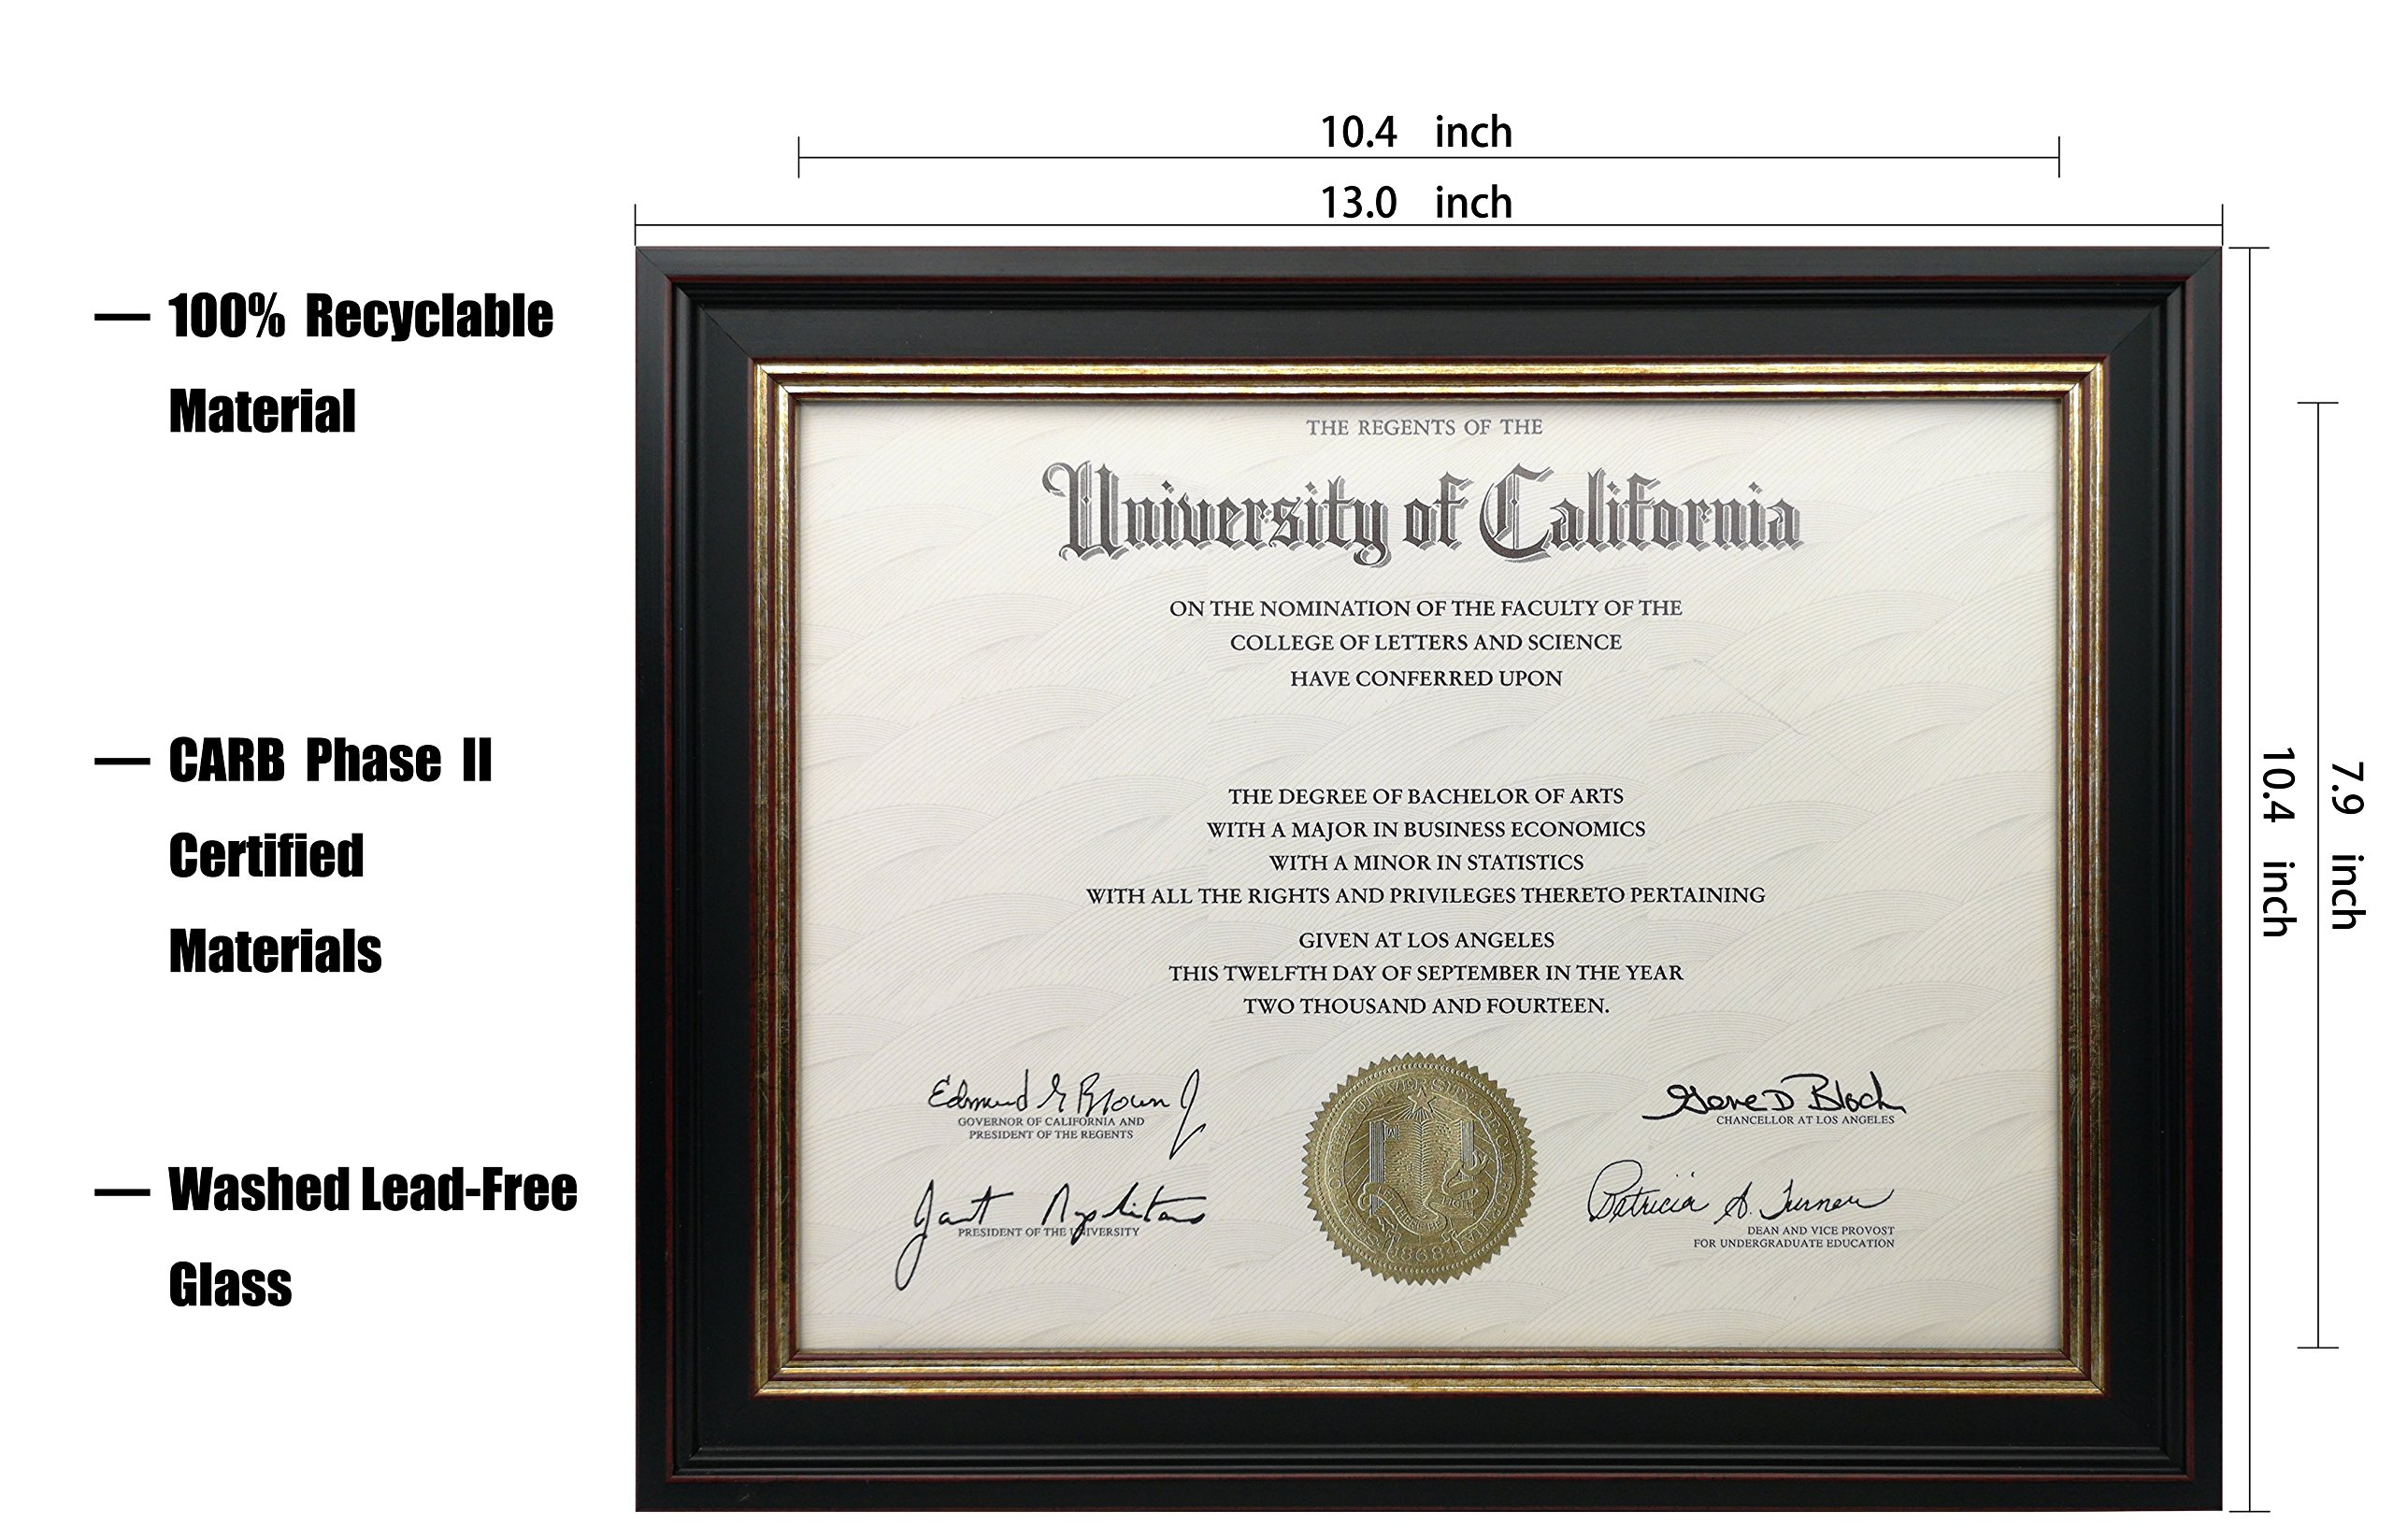 Onuri Inc - Luxurious Document Frame (2-Pack) - Classic 8.5x11 Picture Frame for Diploma Documents and Certificates by Onuri Inc. (Image #6)